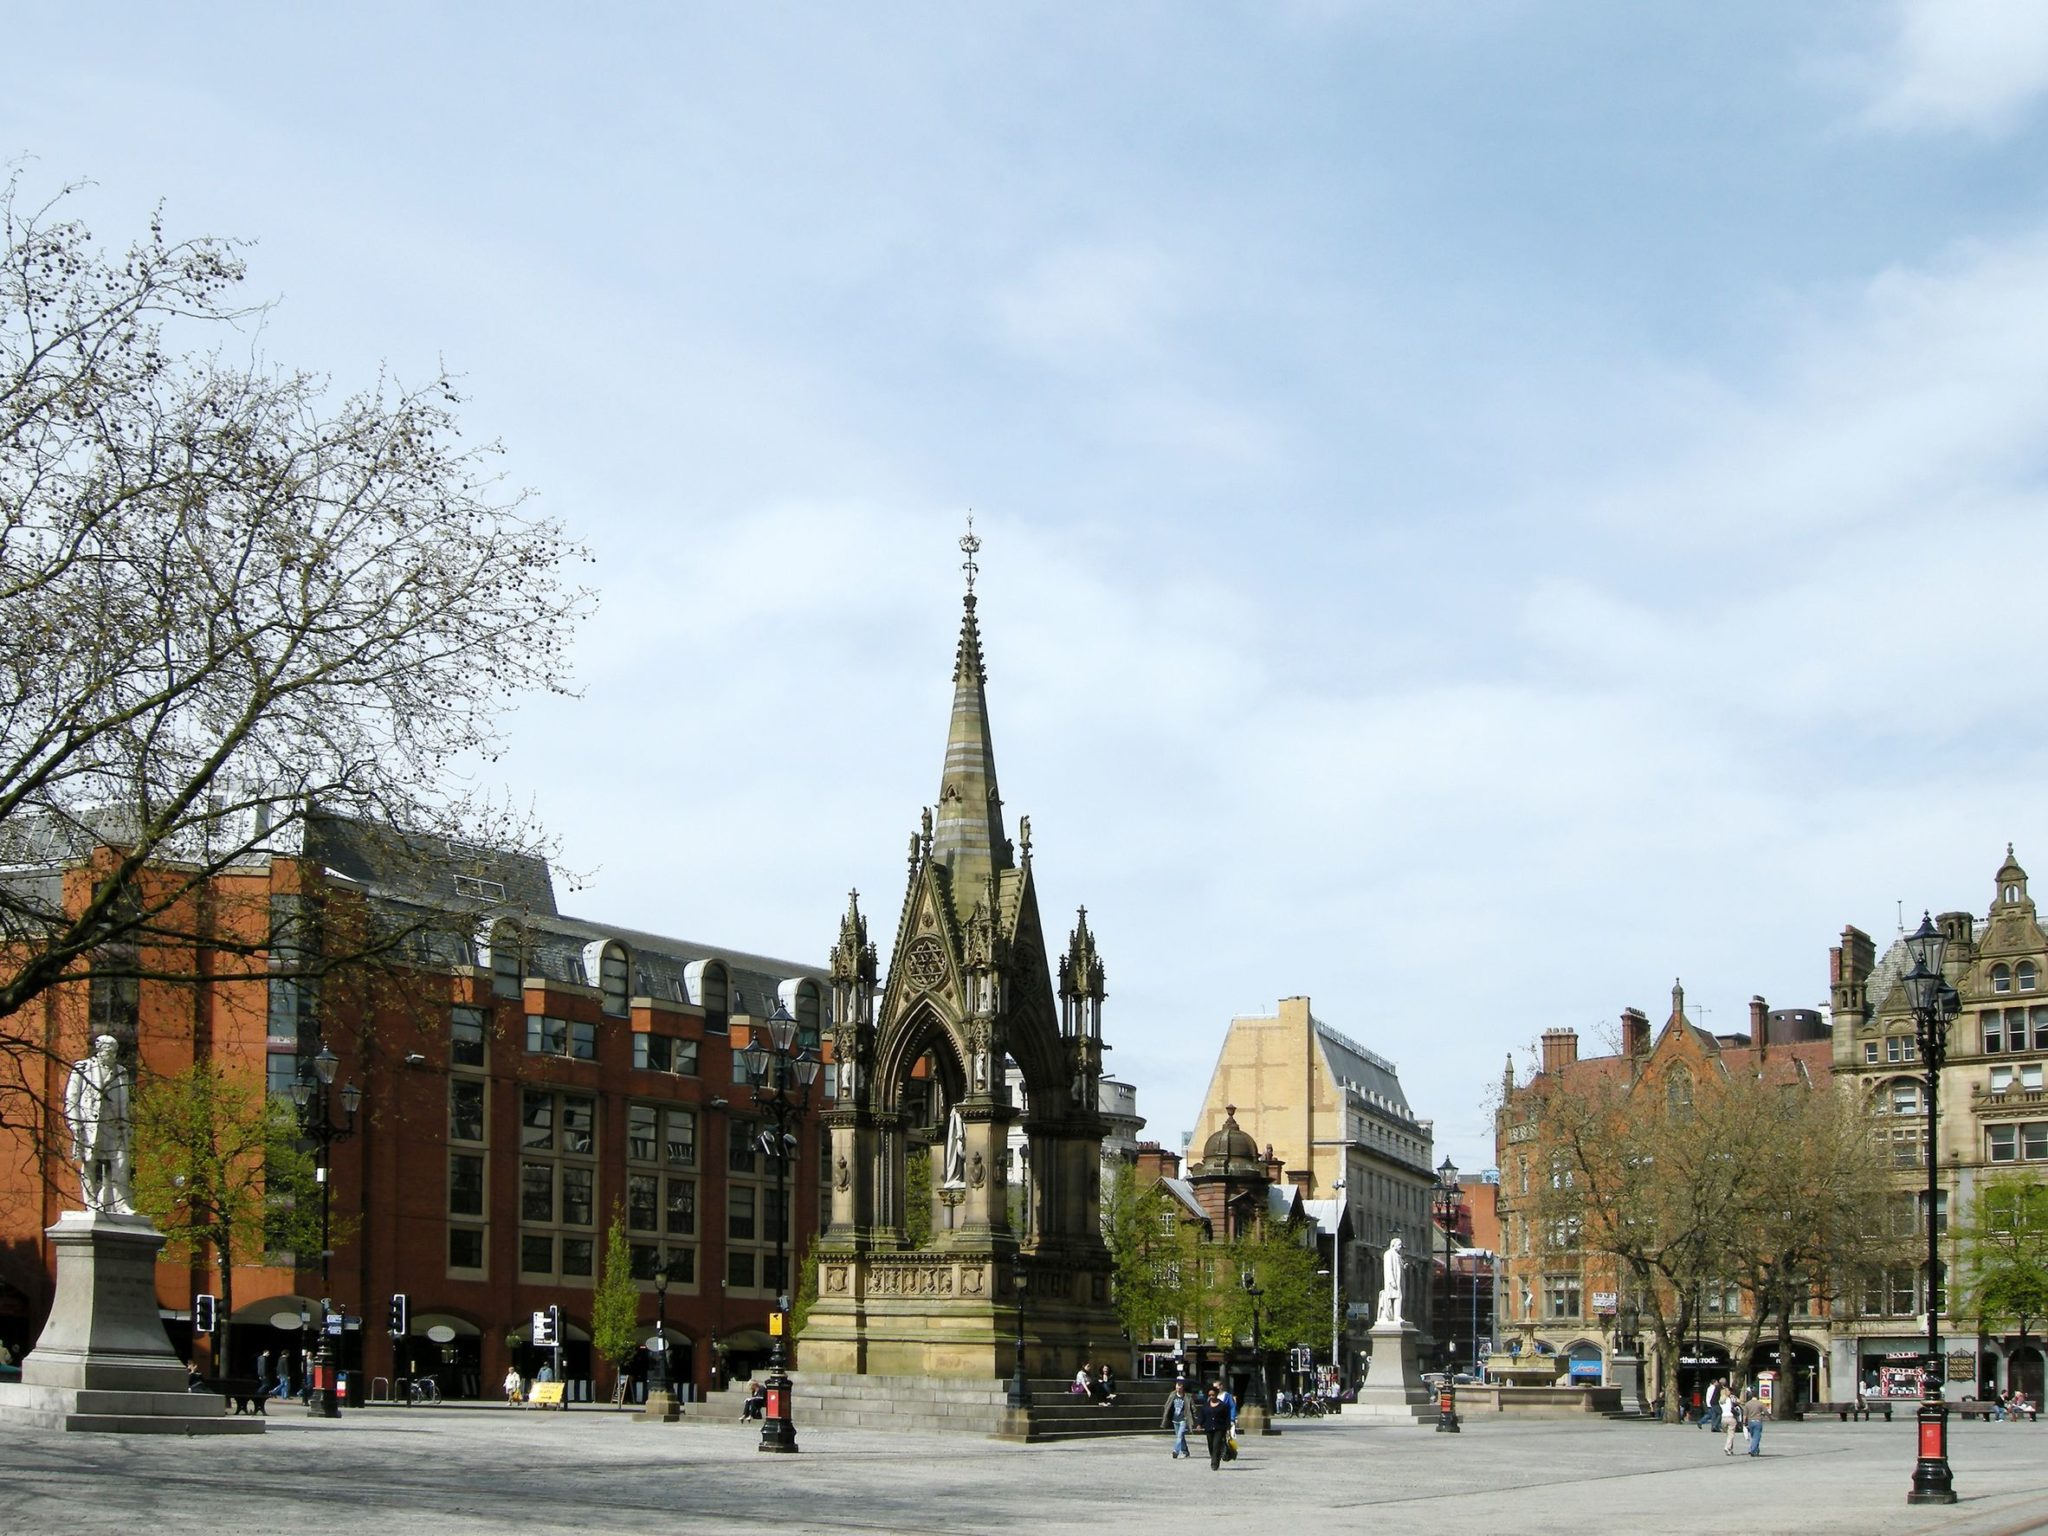 Town Hall Square in Manchester